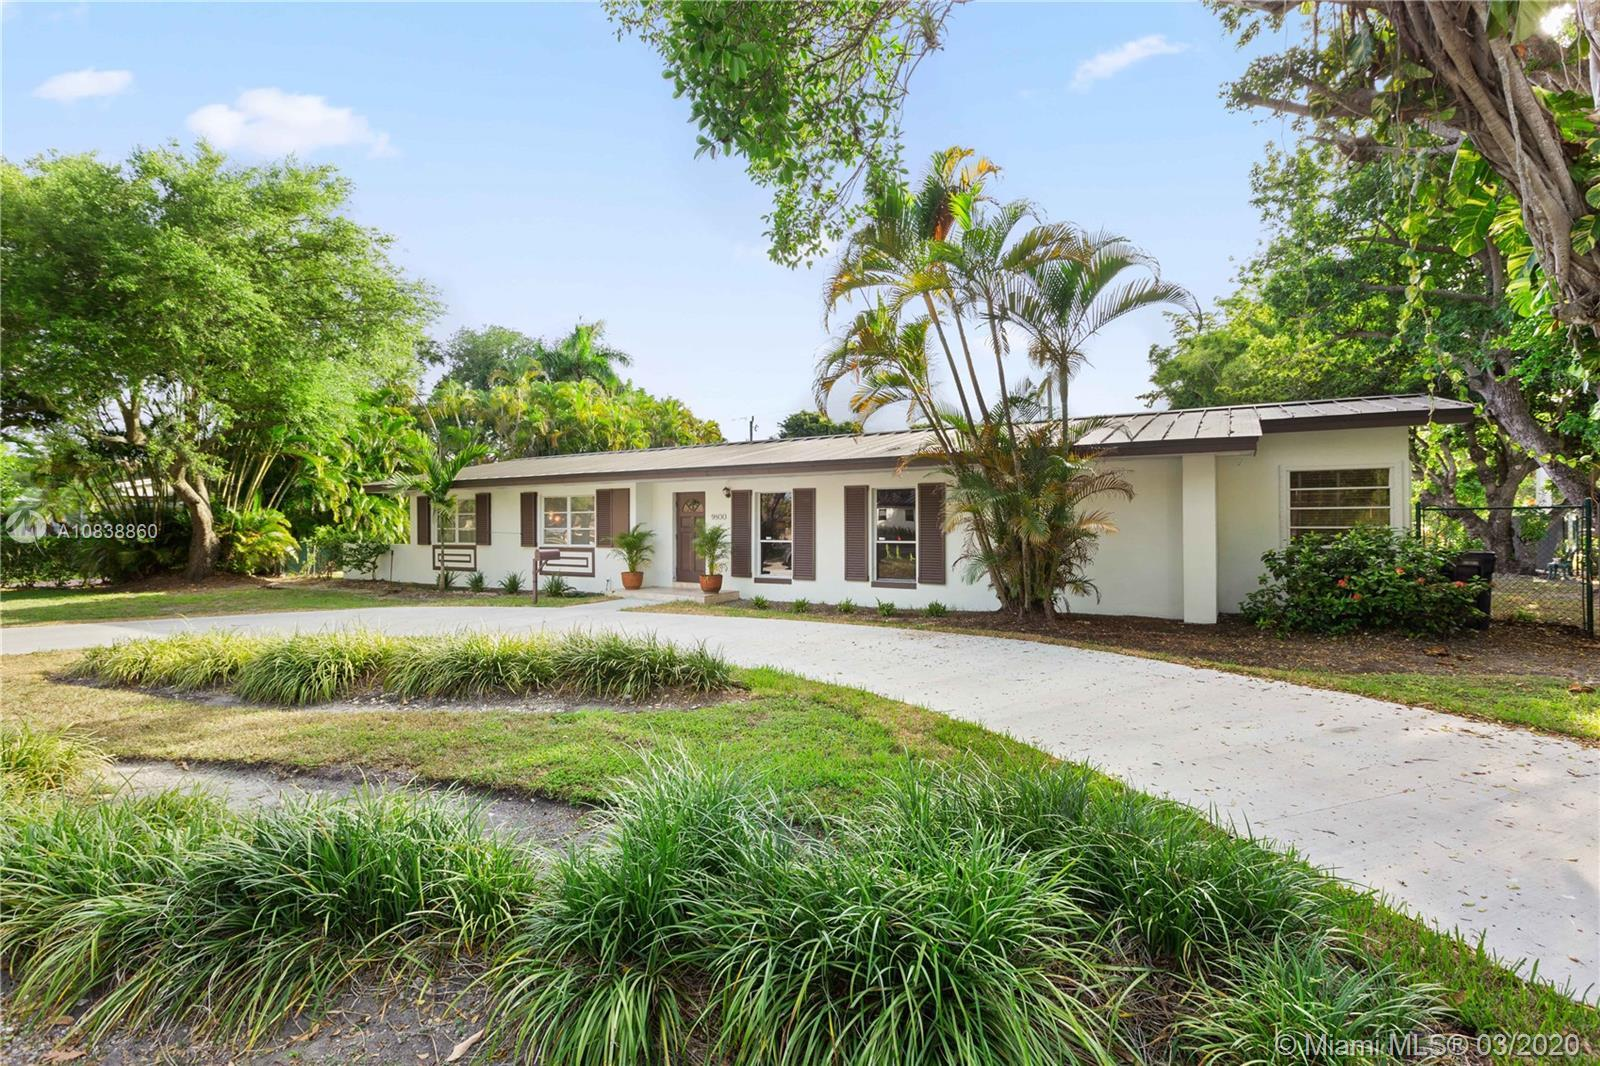 Nestled amongst the tree canopy, this 4-bedroom, 3-bath, pool home offers a feeling of seclusion in